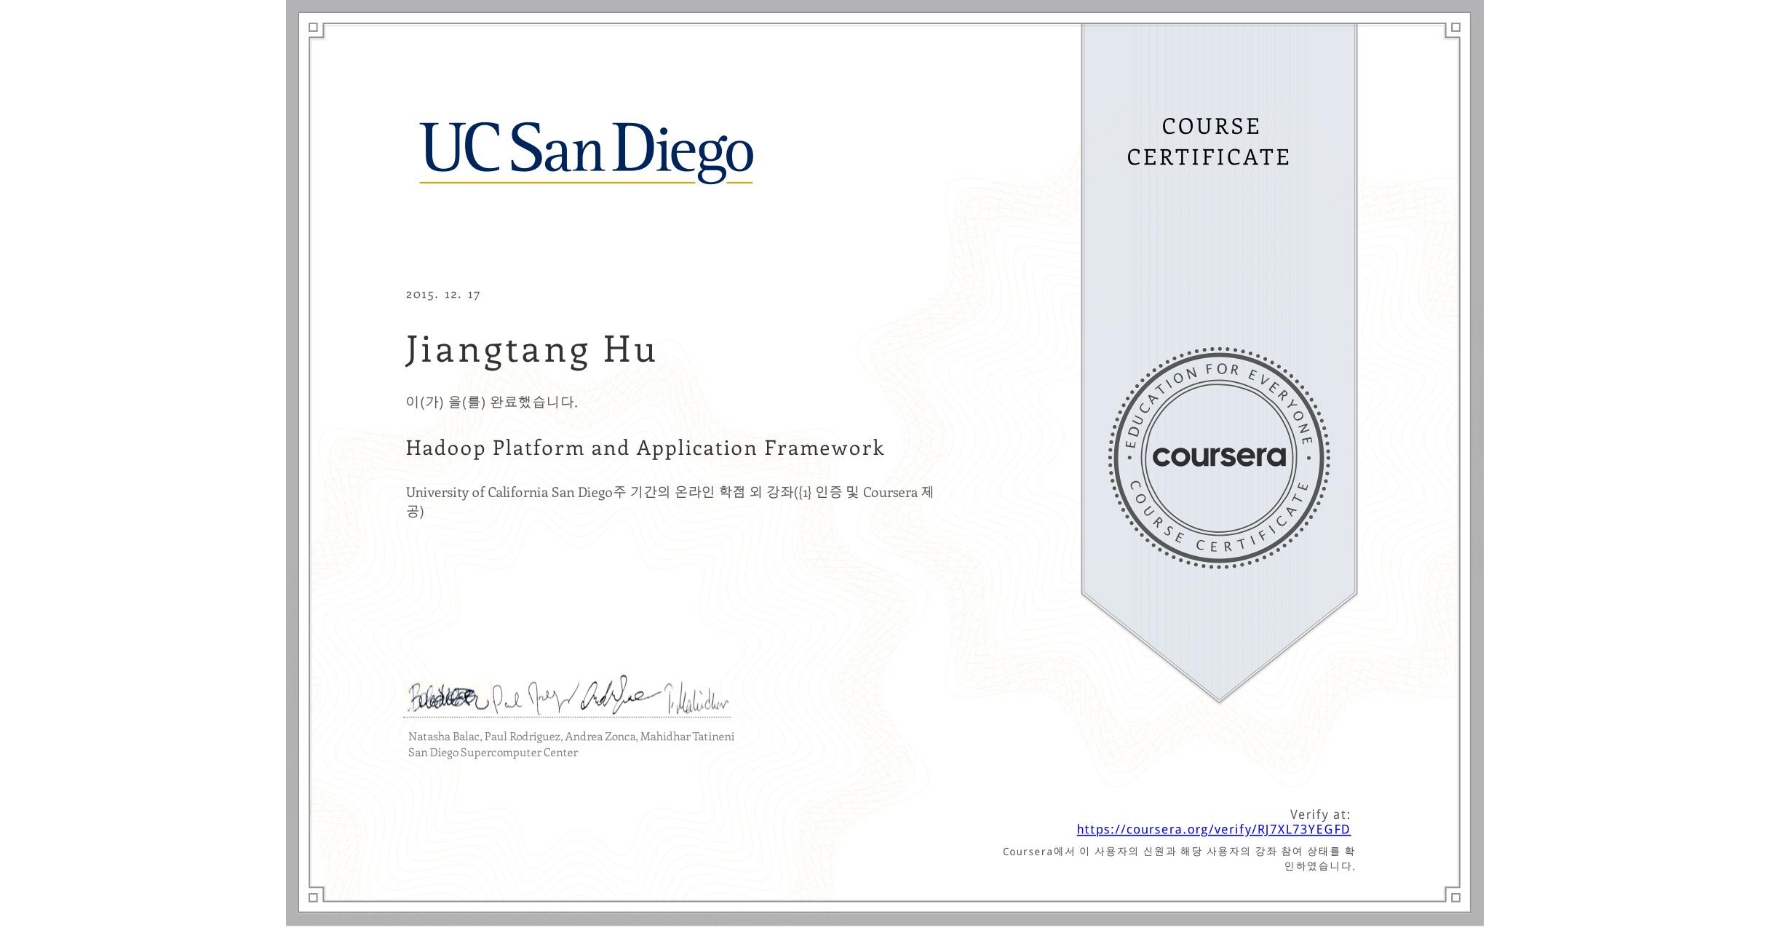 View certificate for Jiangtang Hu, Hadoop Platform and Application Framework, an online non-credit course authorized by University of California San Diego and offered through Coursera